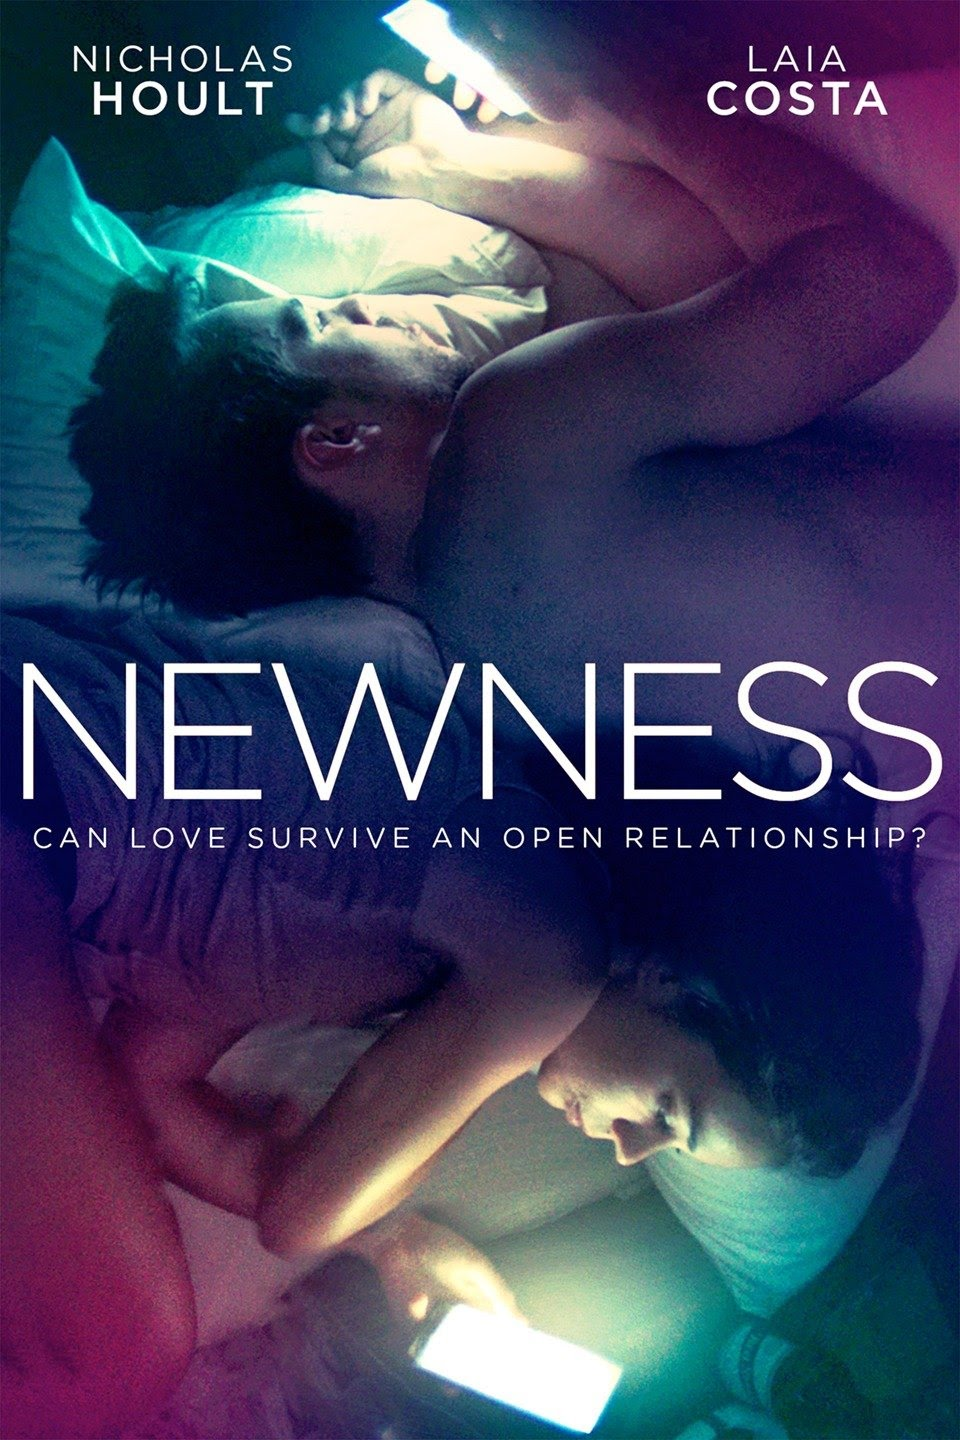 Download (18+) Newness in English (2017) | 720p